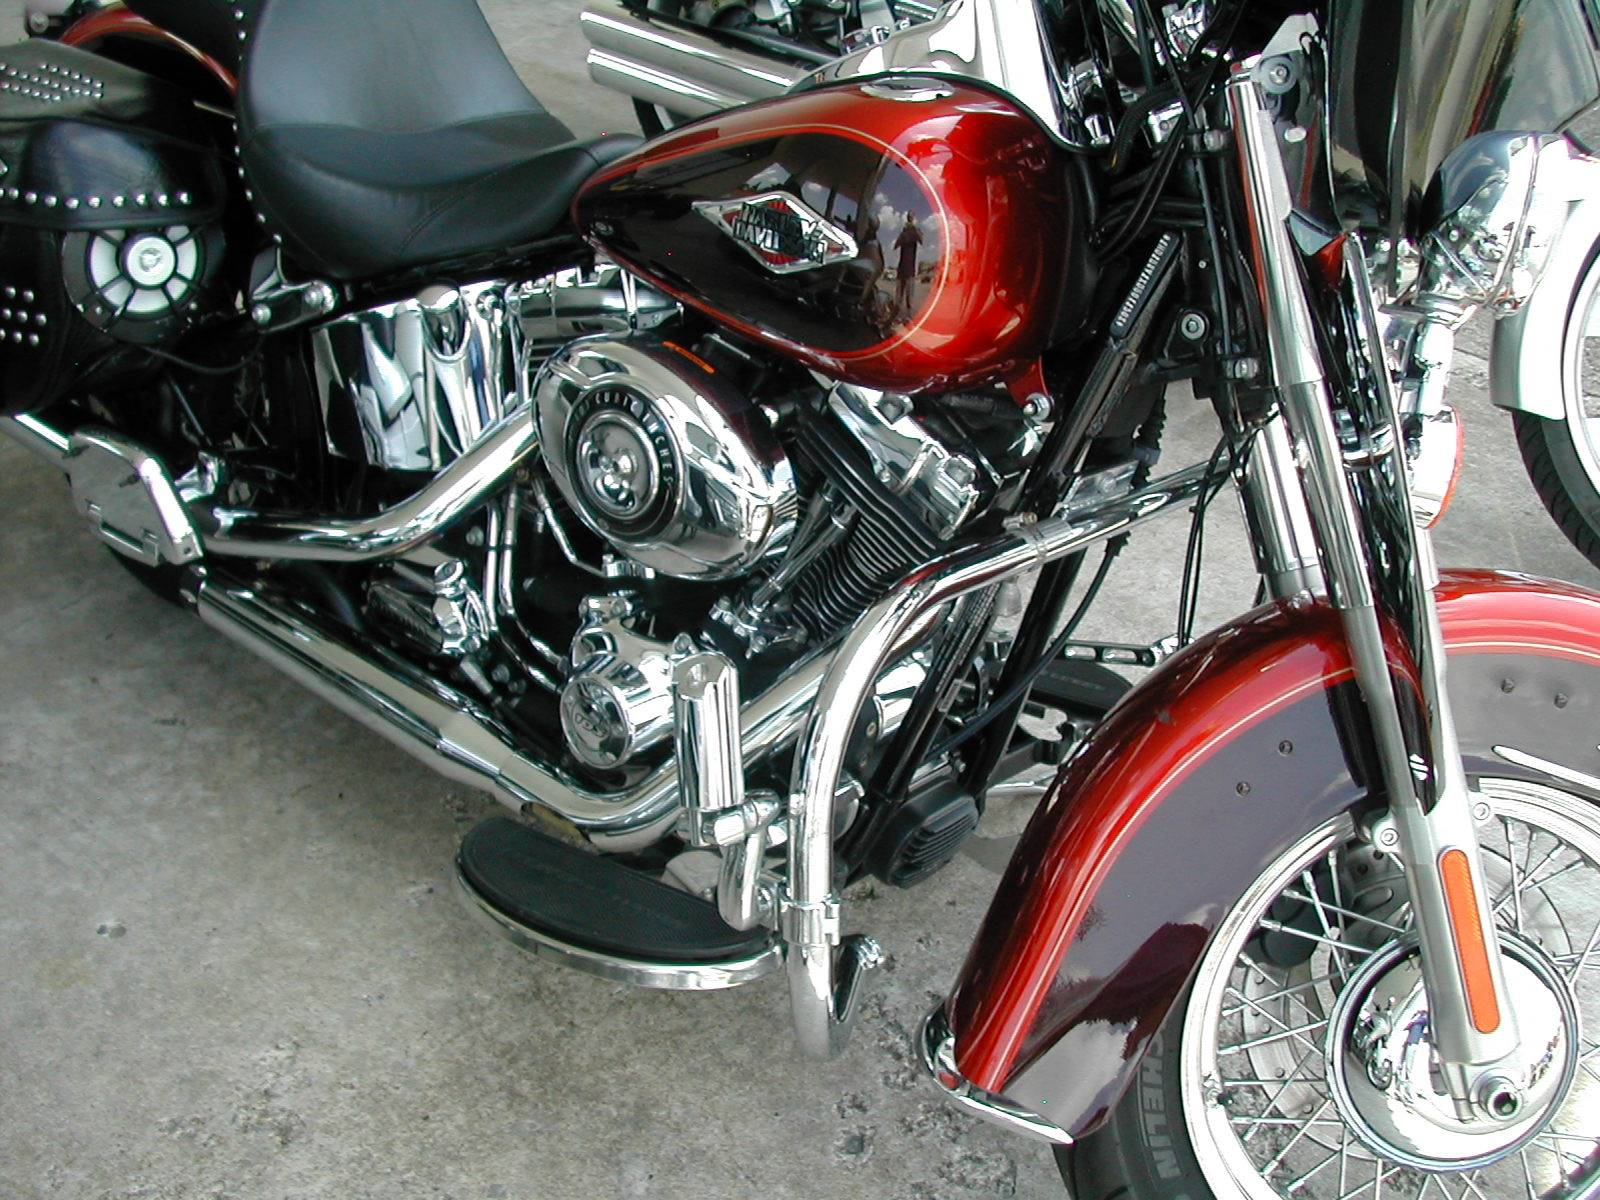 Harley Davidson Heritage Softail Used 2013 Classic Motorcycles In Tulsa Oklahoma